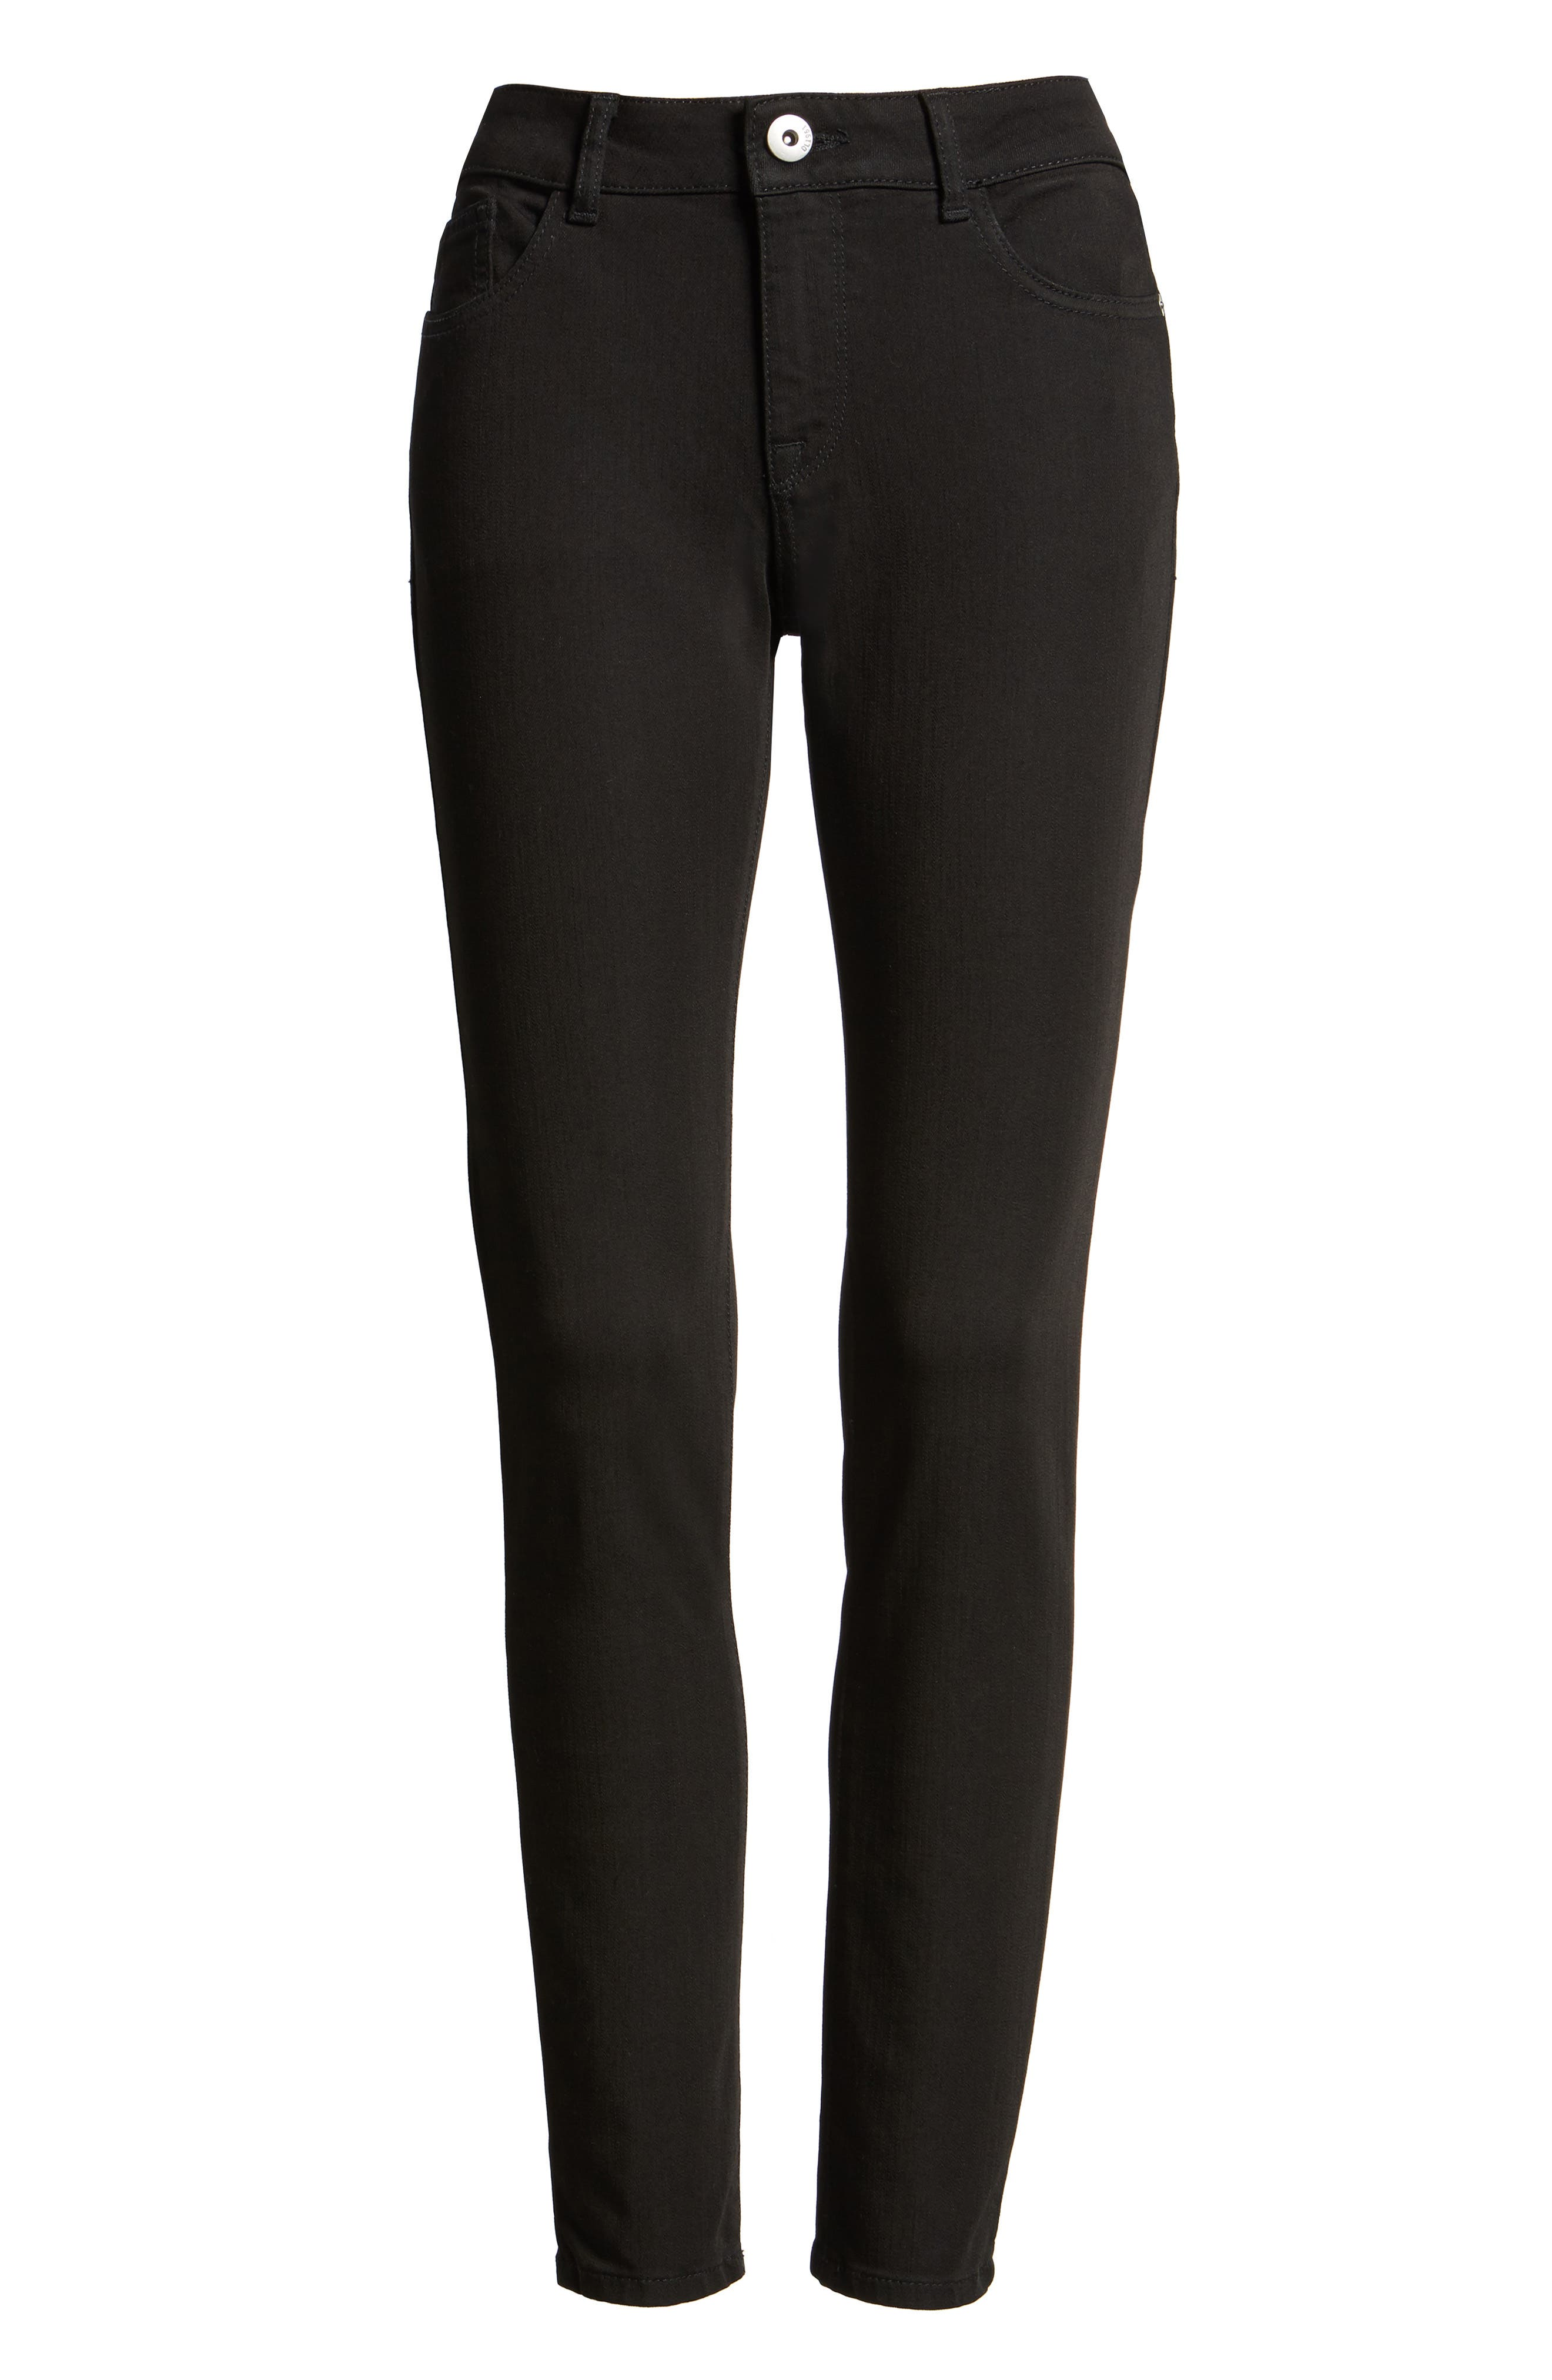 'Florence' Instasculpt Skinny Jeans,                             Main thumbnail 1, color,                             001